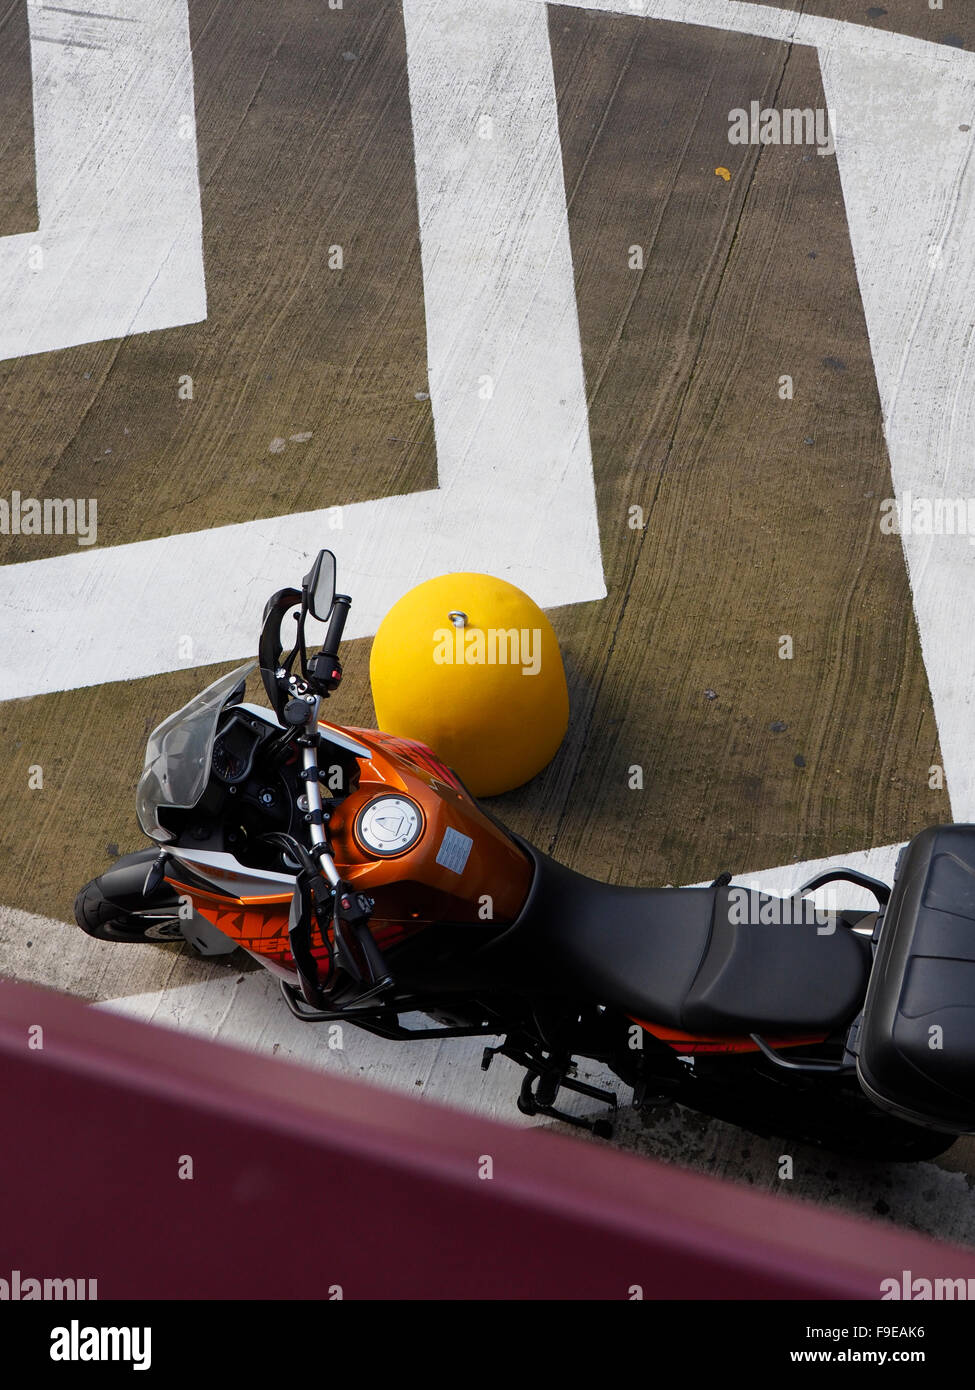 KTM adventure touring motorcycle parked seen from above in Rome EUR, Italy - Stock Image